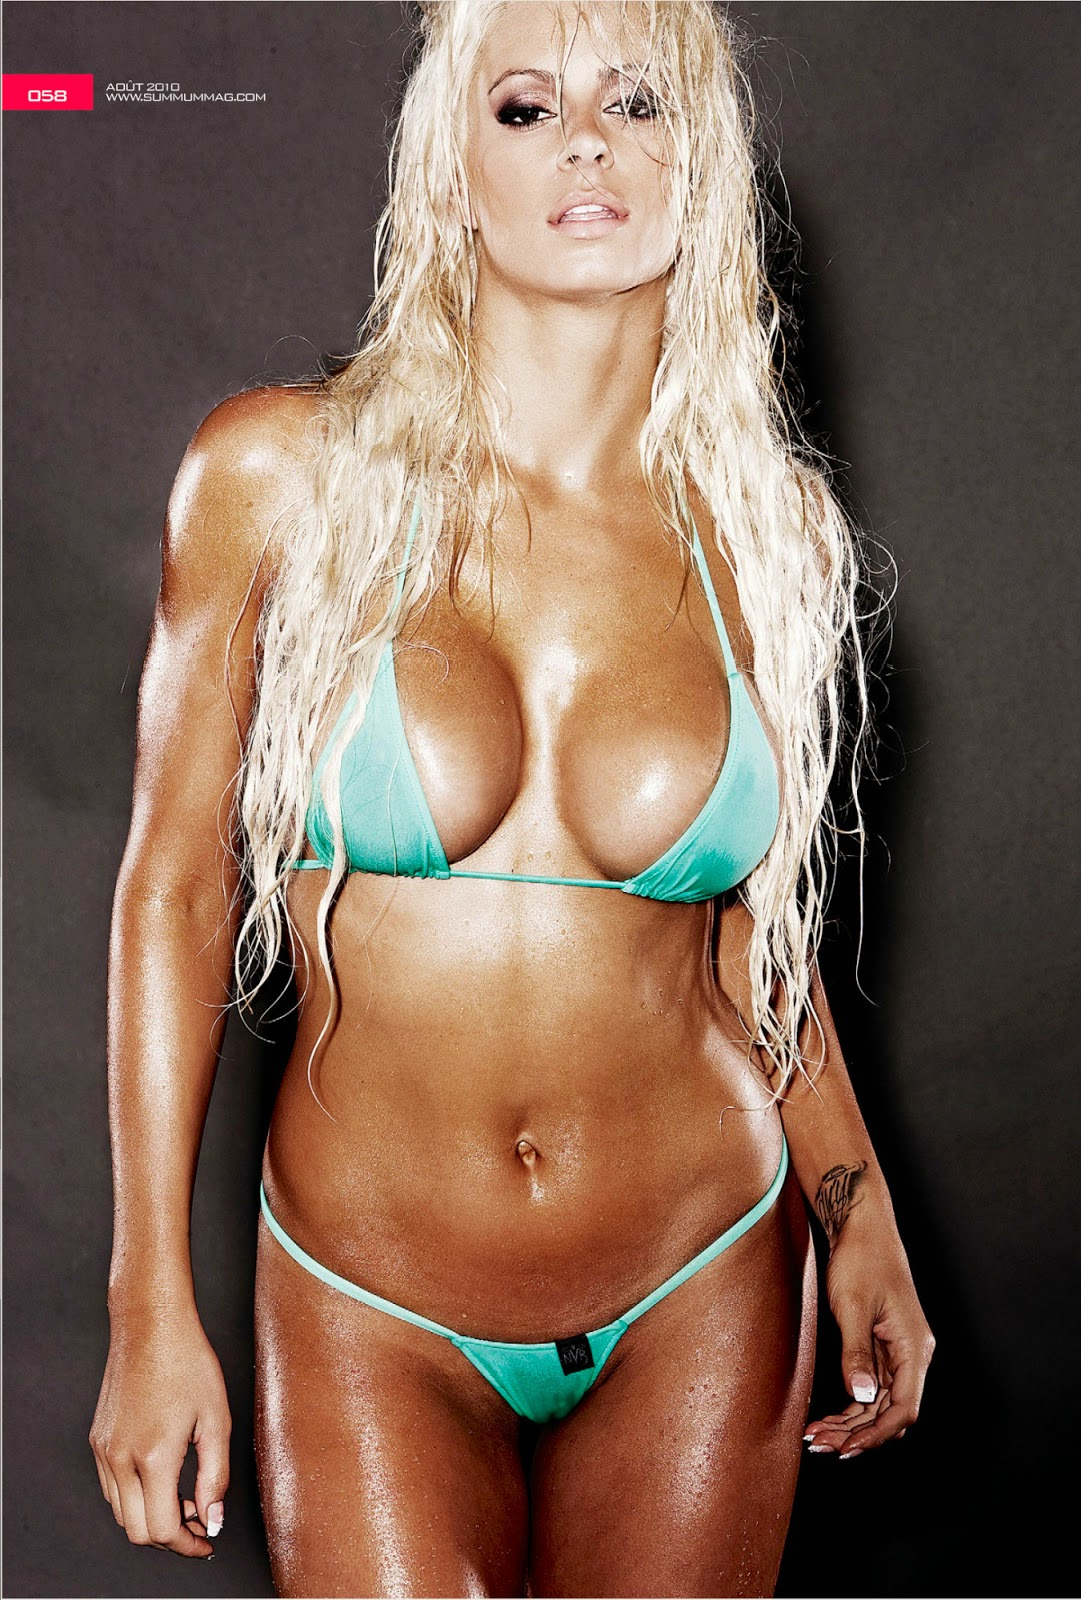 image Wwe summer rae and emma in bikinis